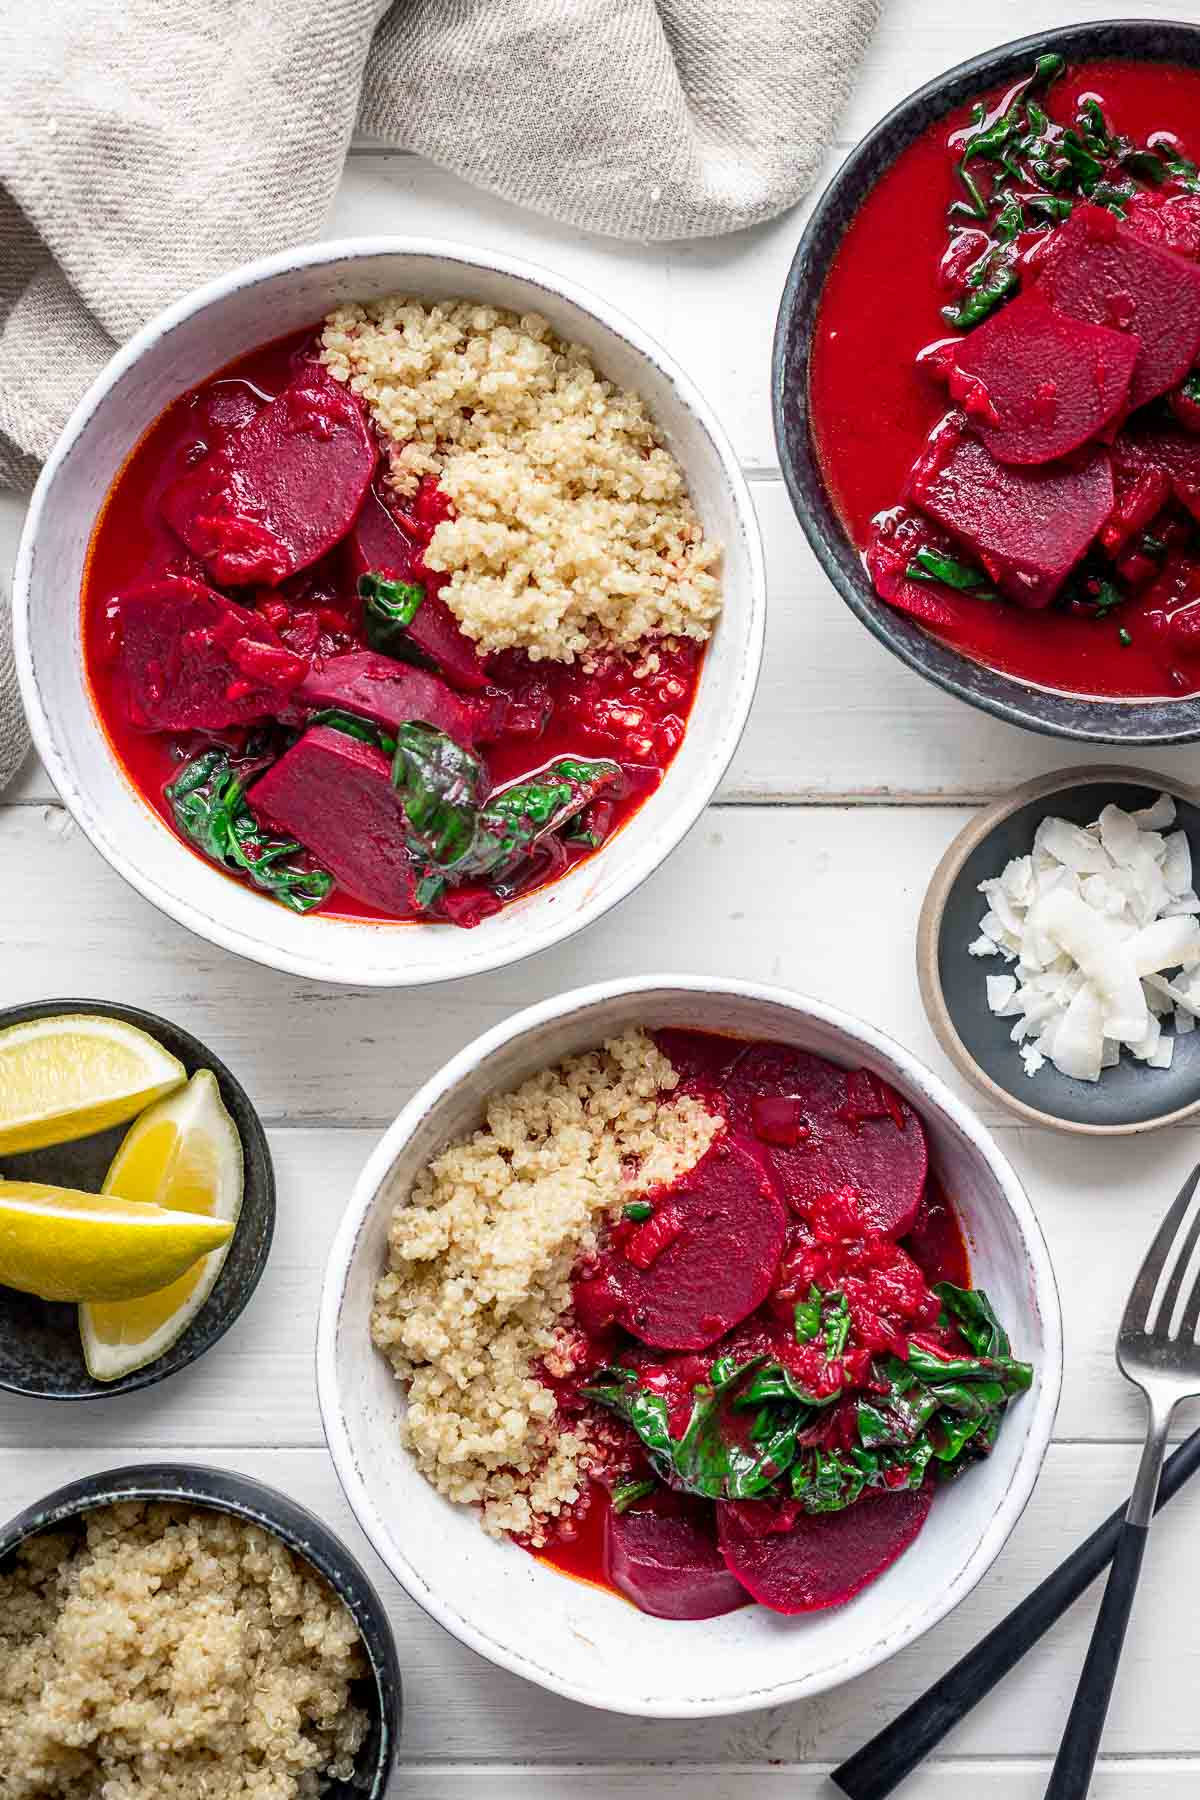 Beetroot curry recipe with spinach